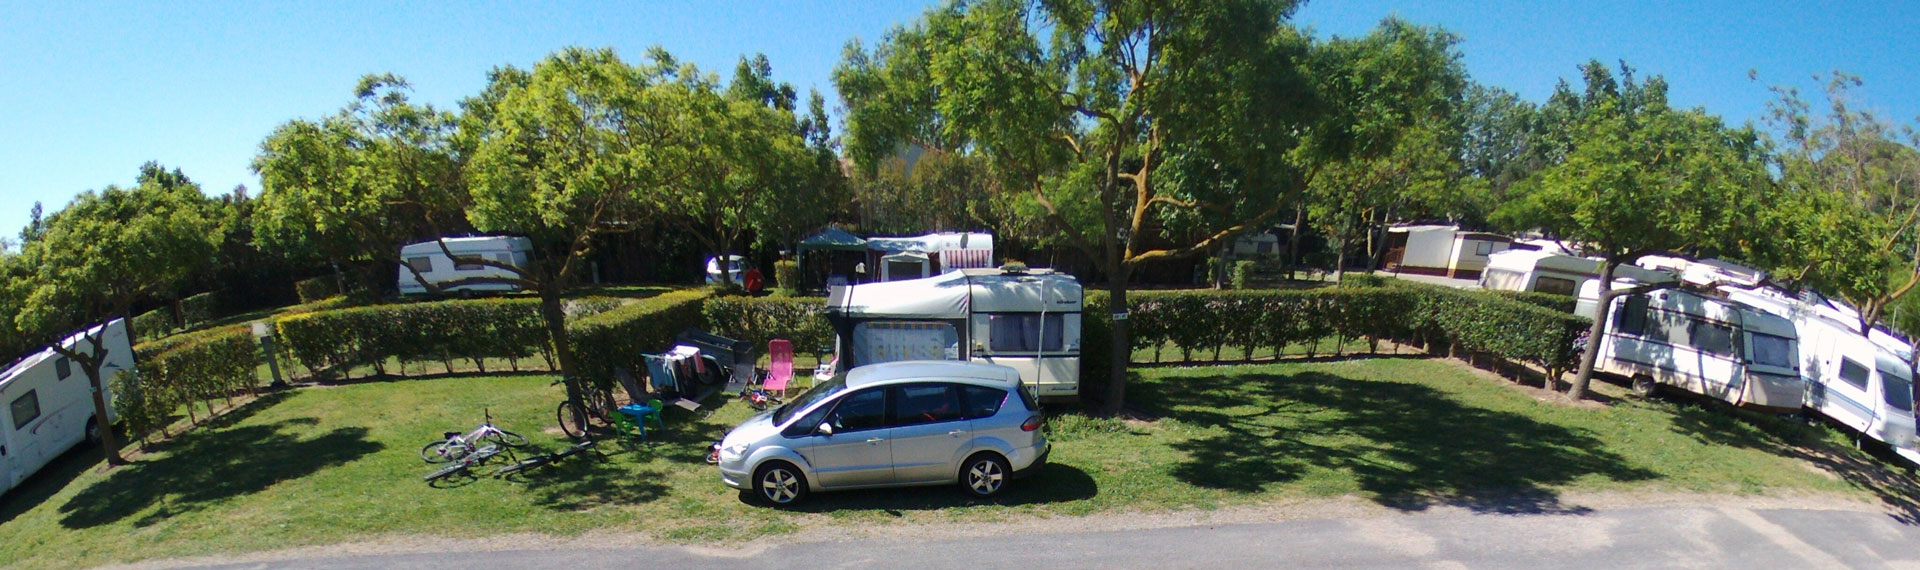 Camping village *** La Gabinelle, camping near Sérignan: rental of pitches near Valras for tent, campervan and caravan